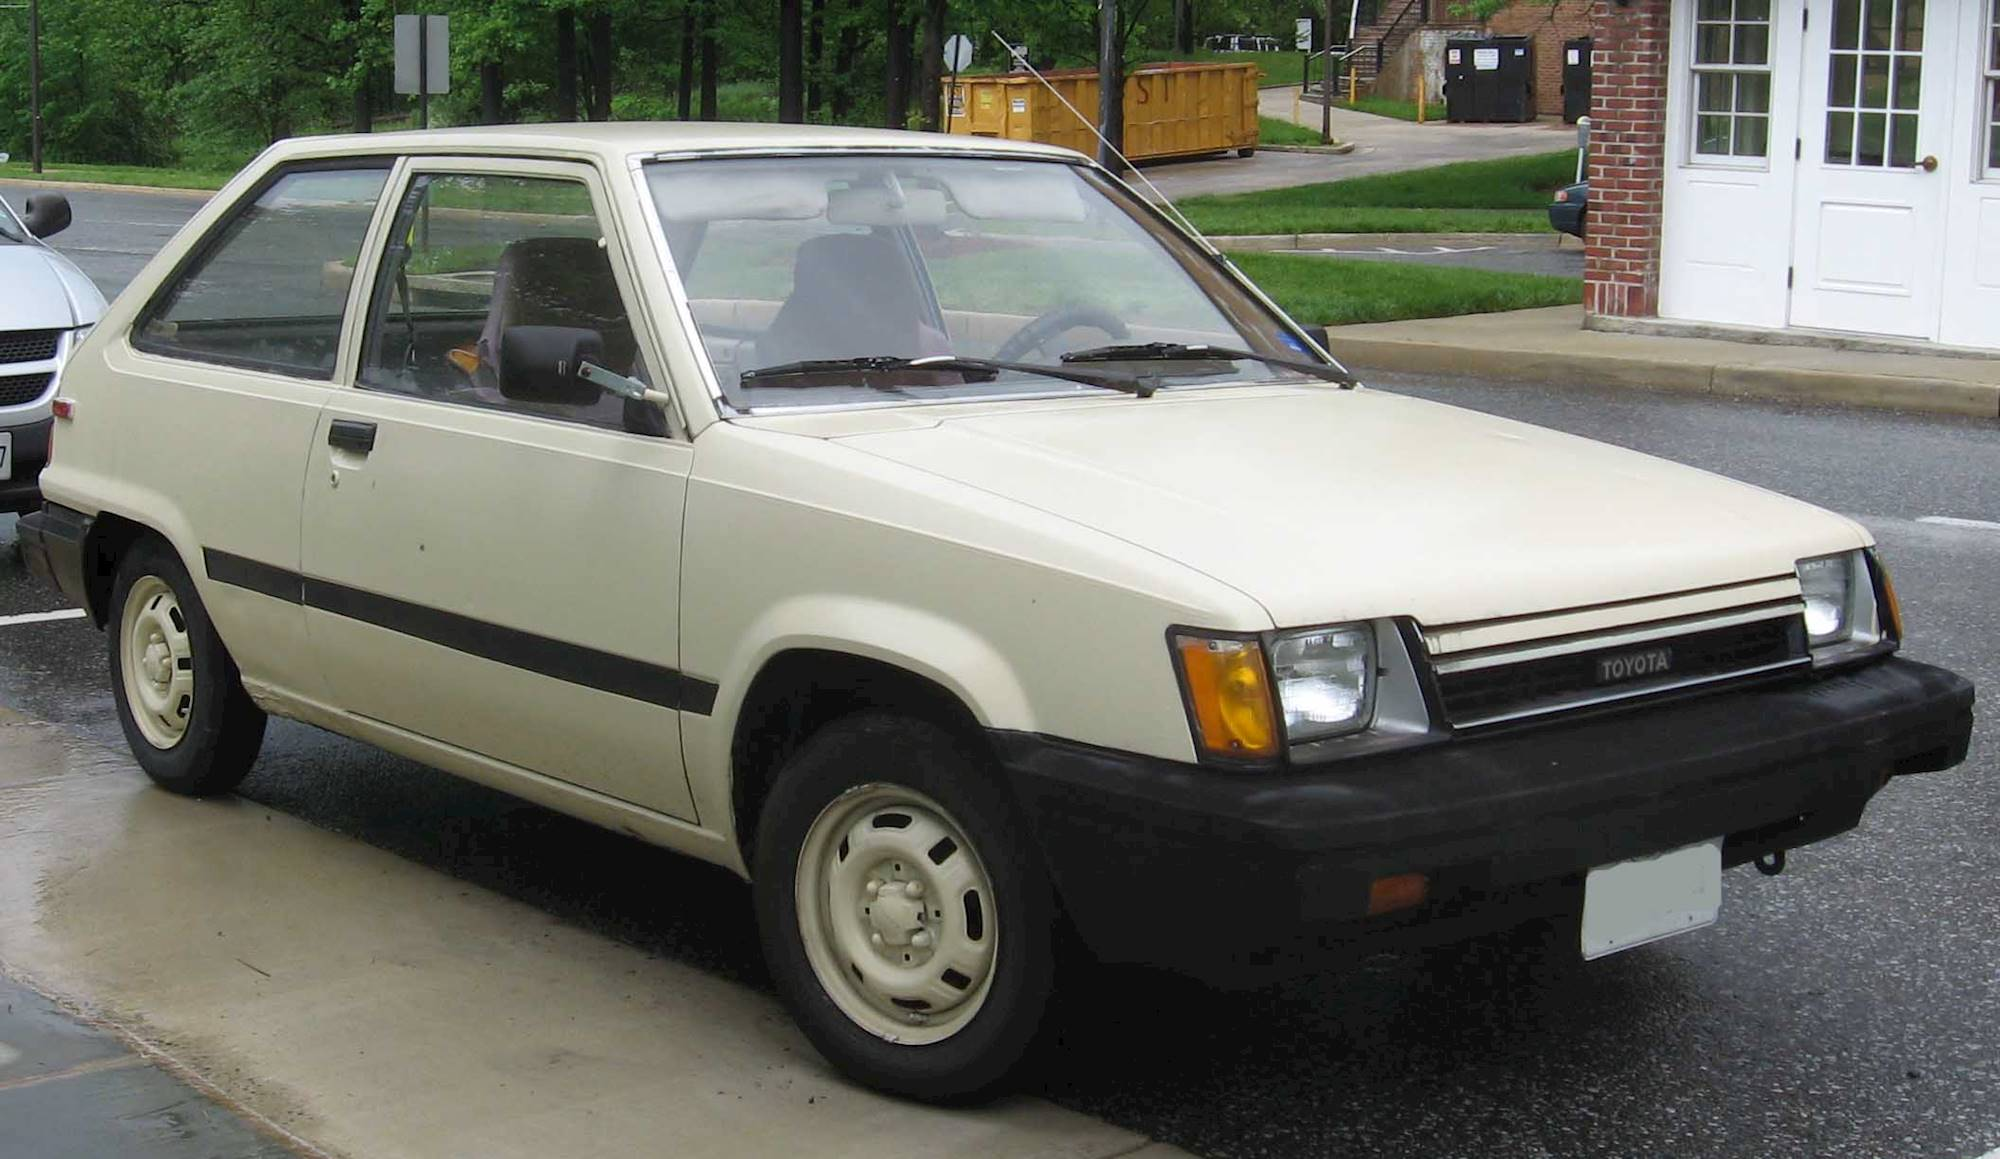 Toyota Tercel 1990 Manual Good Owner Guide Website \u2022 2003 Toyota  Corolla Fuse Box Diagram 1991 Toyota Tercel Fuse Box Diagram